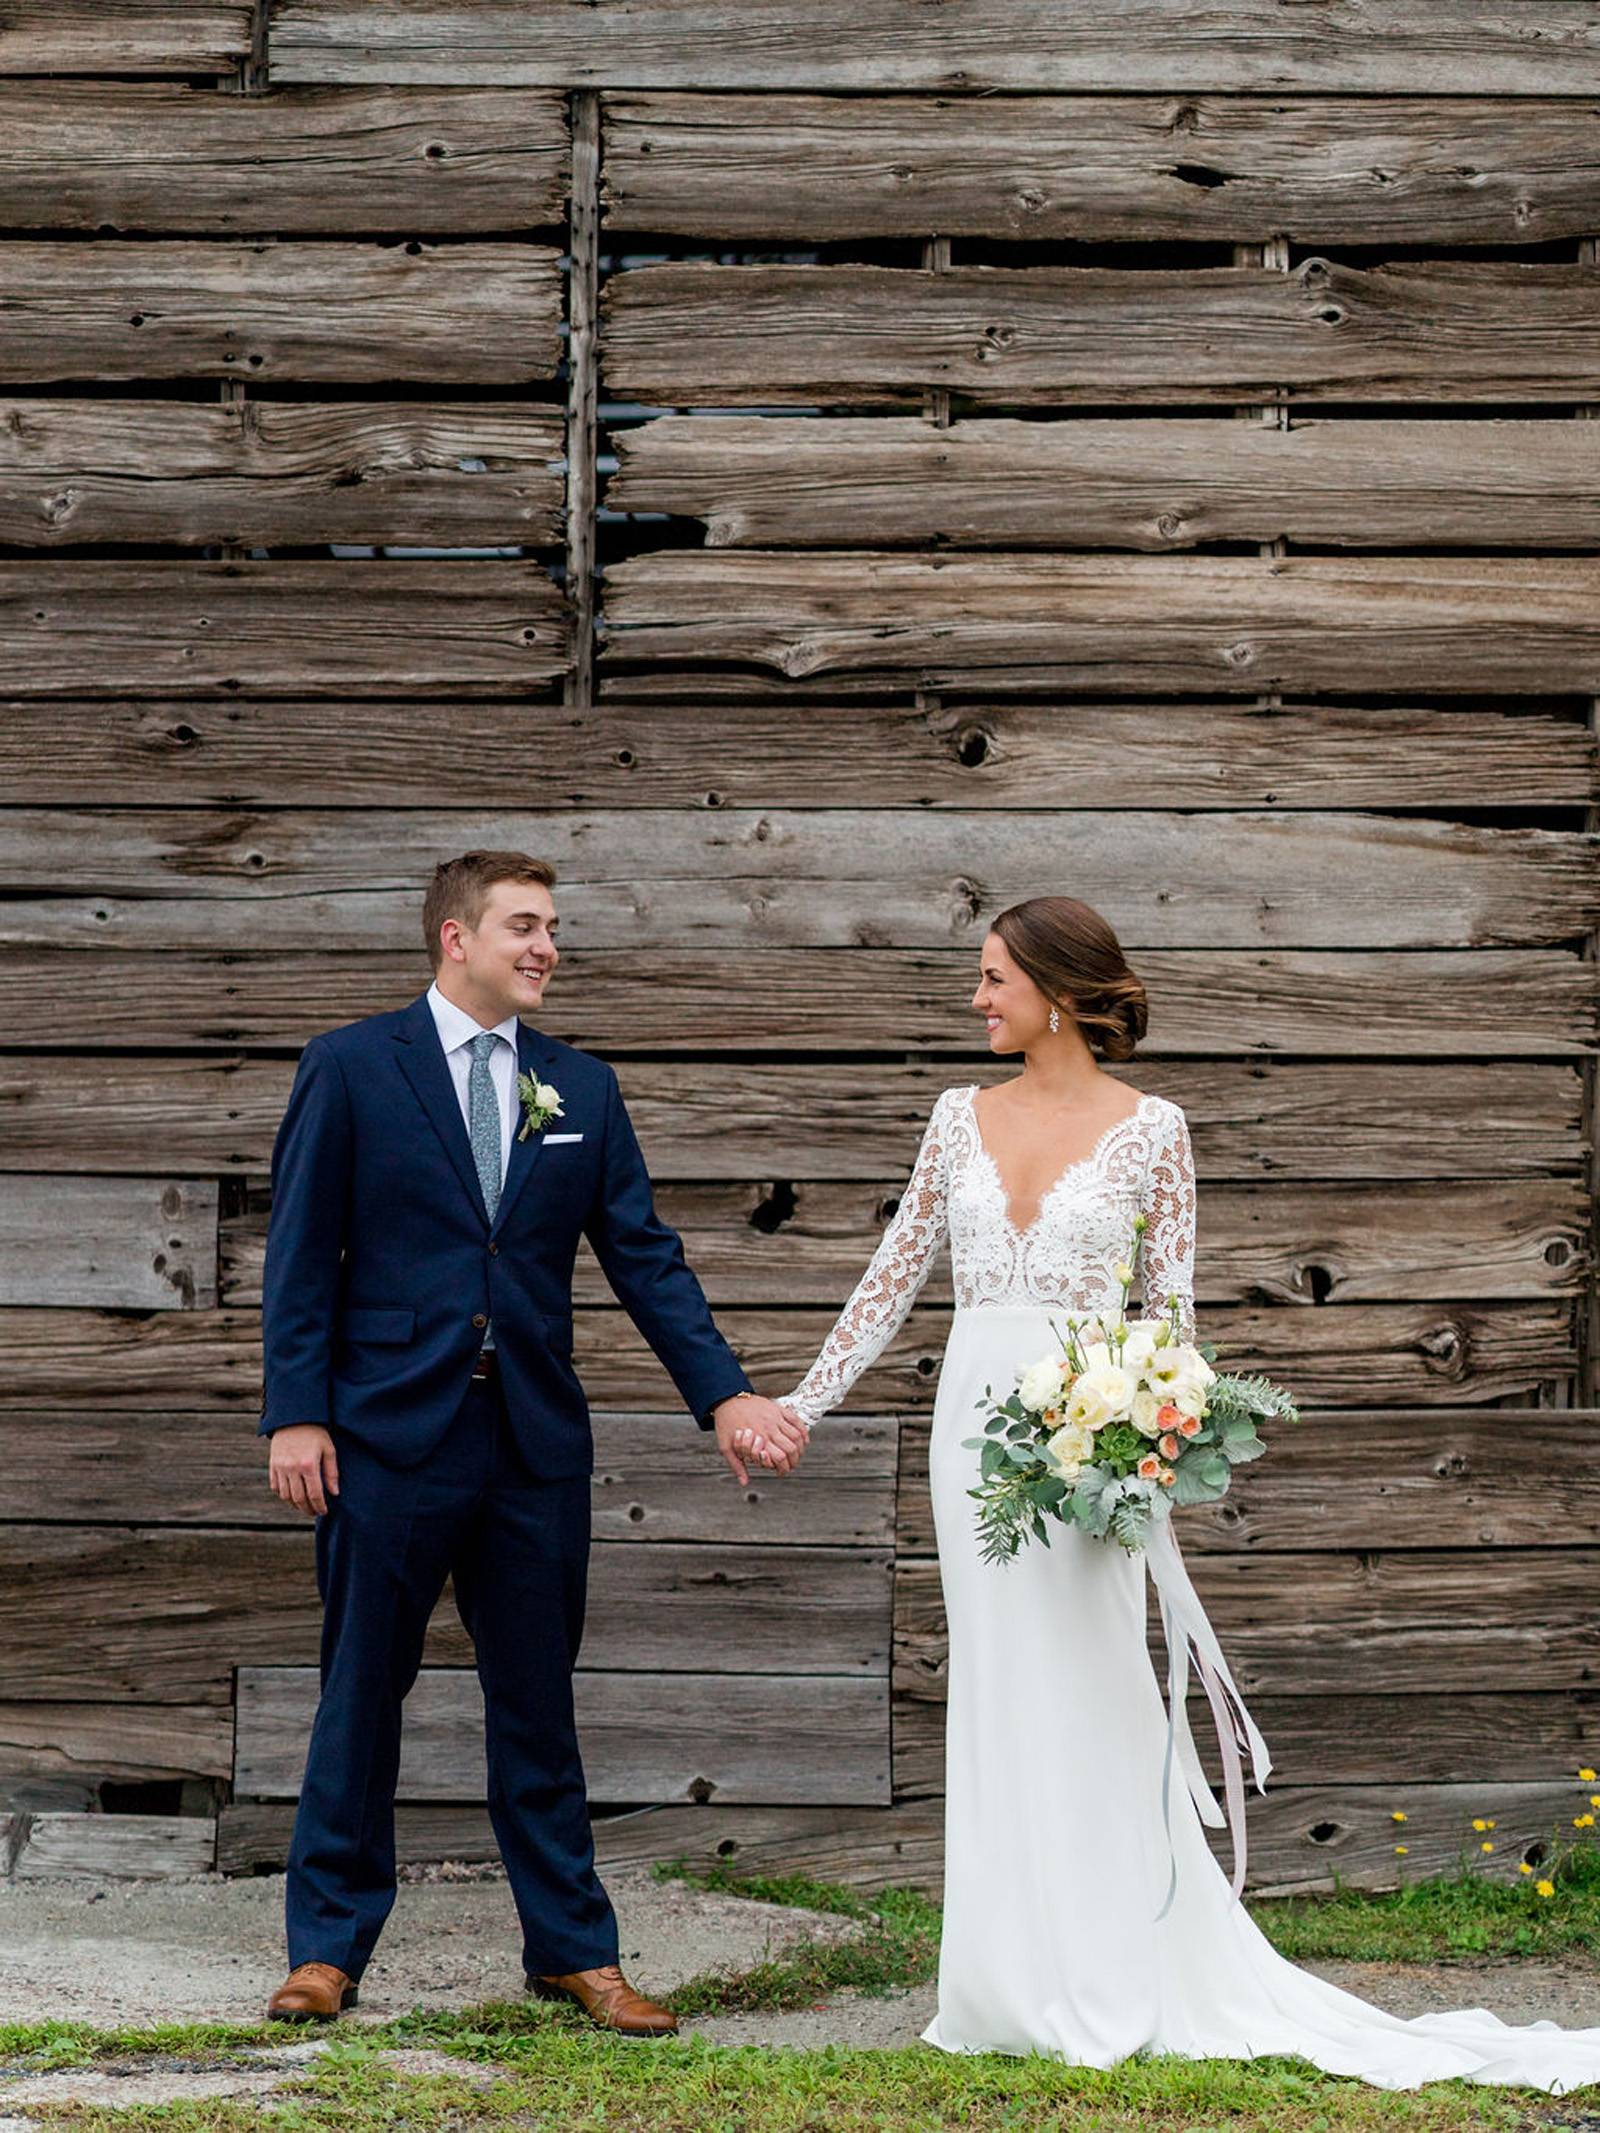 Bride and groom wedding day portrait at the Inn at the Round Barn Farm rustic backdrop photo